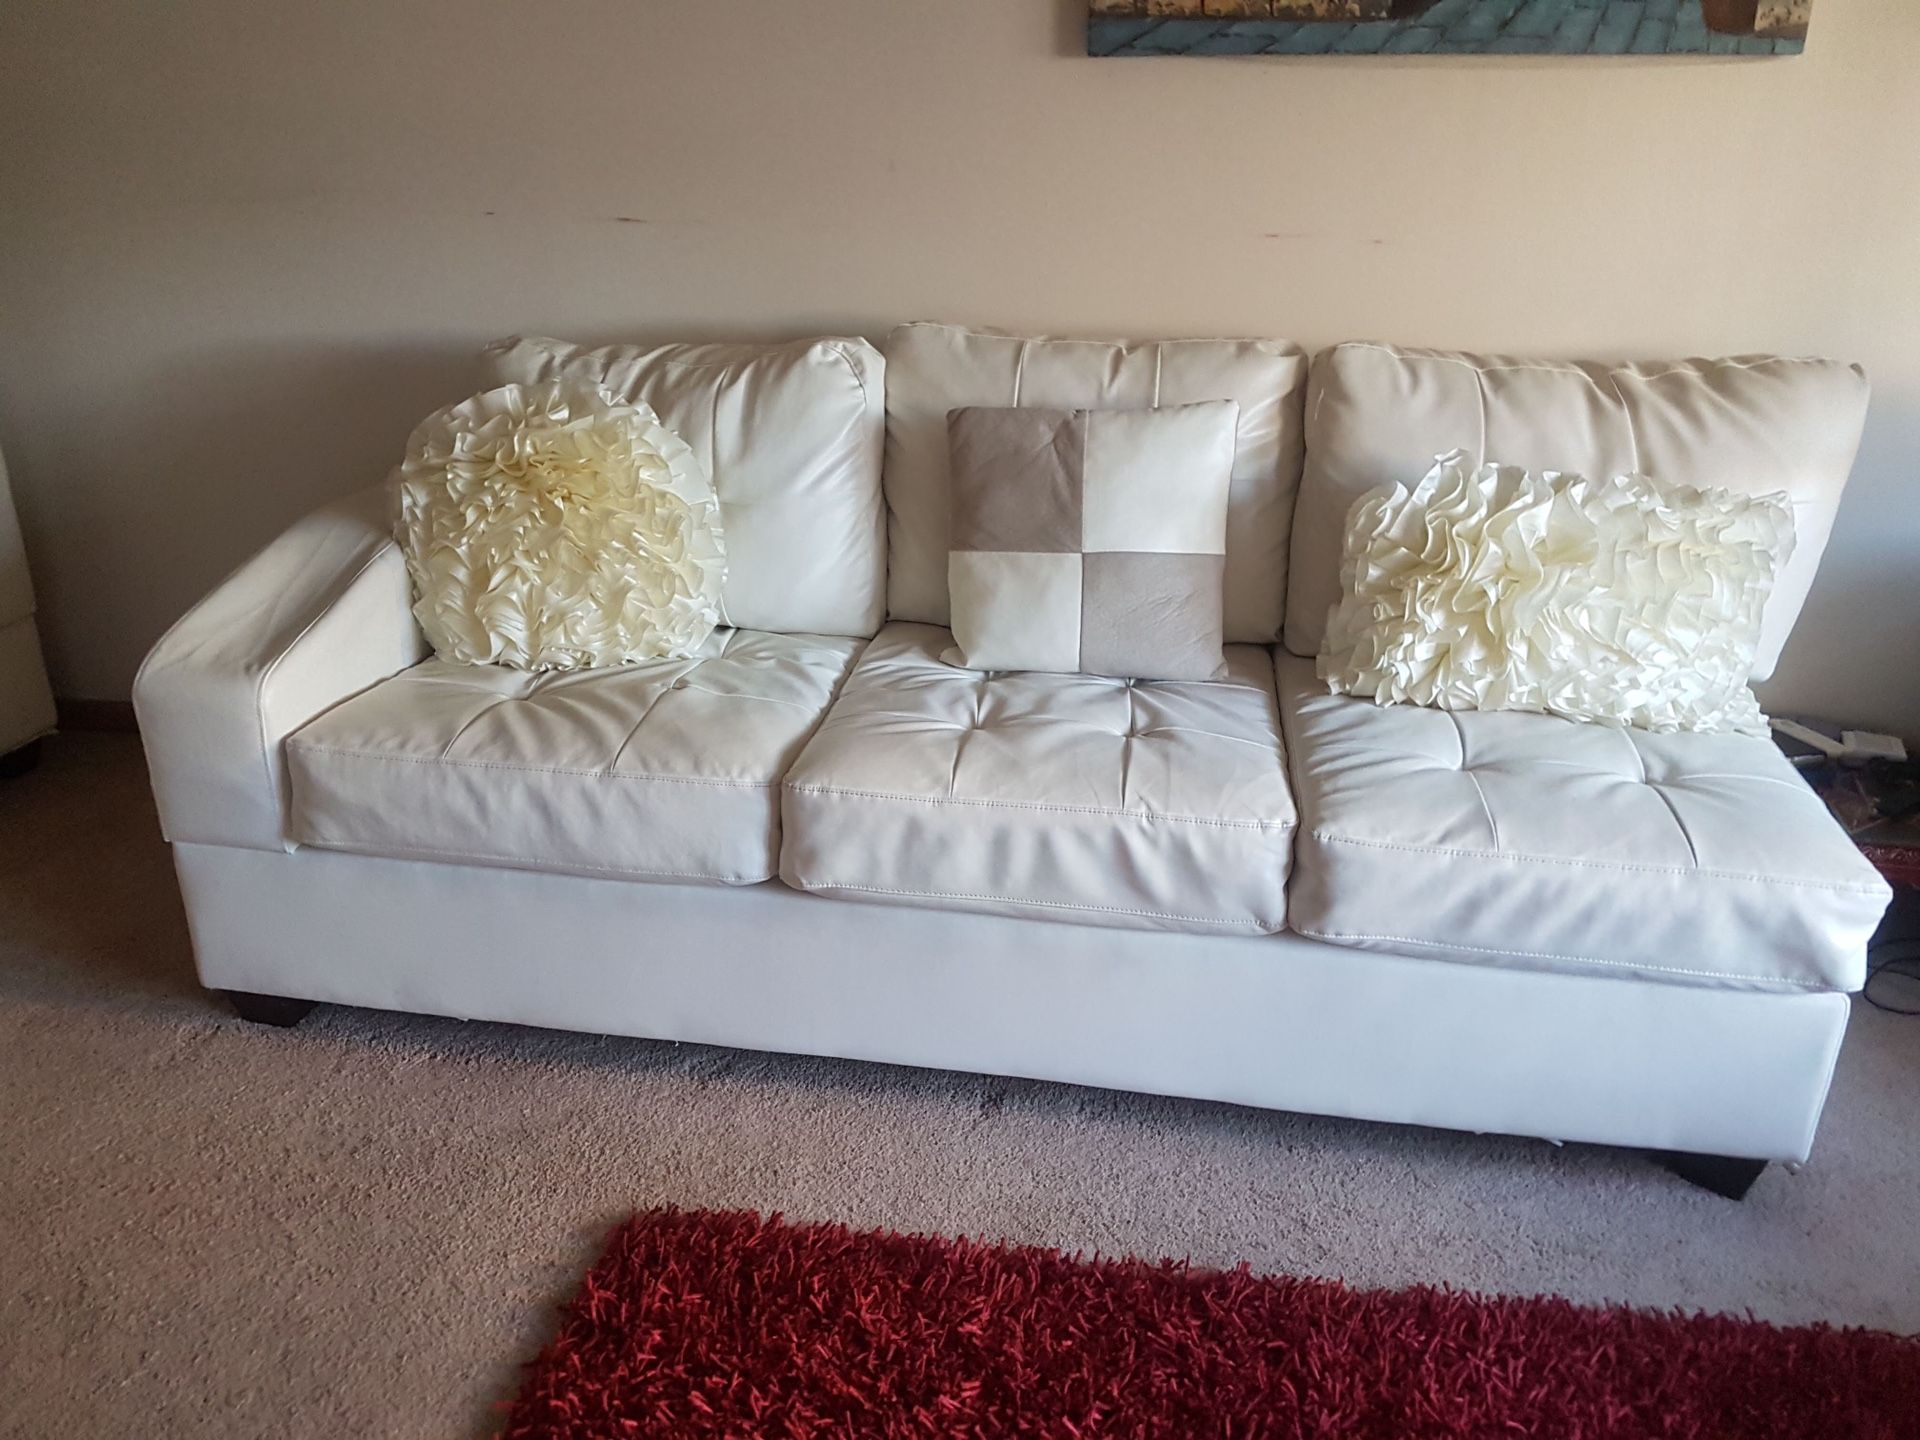 White leather sectional couche shape sofas